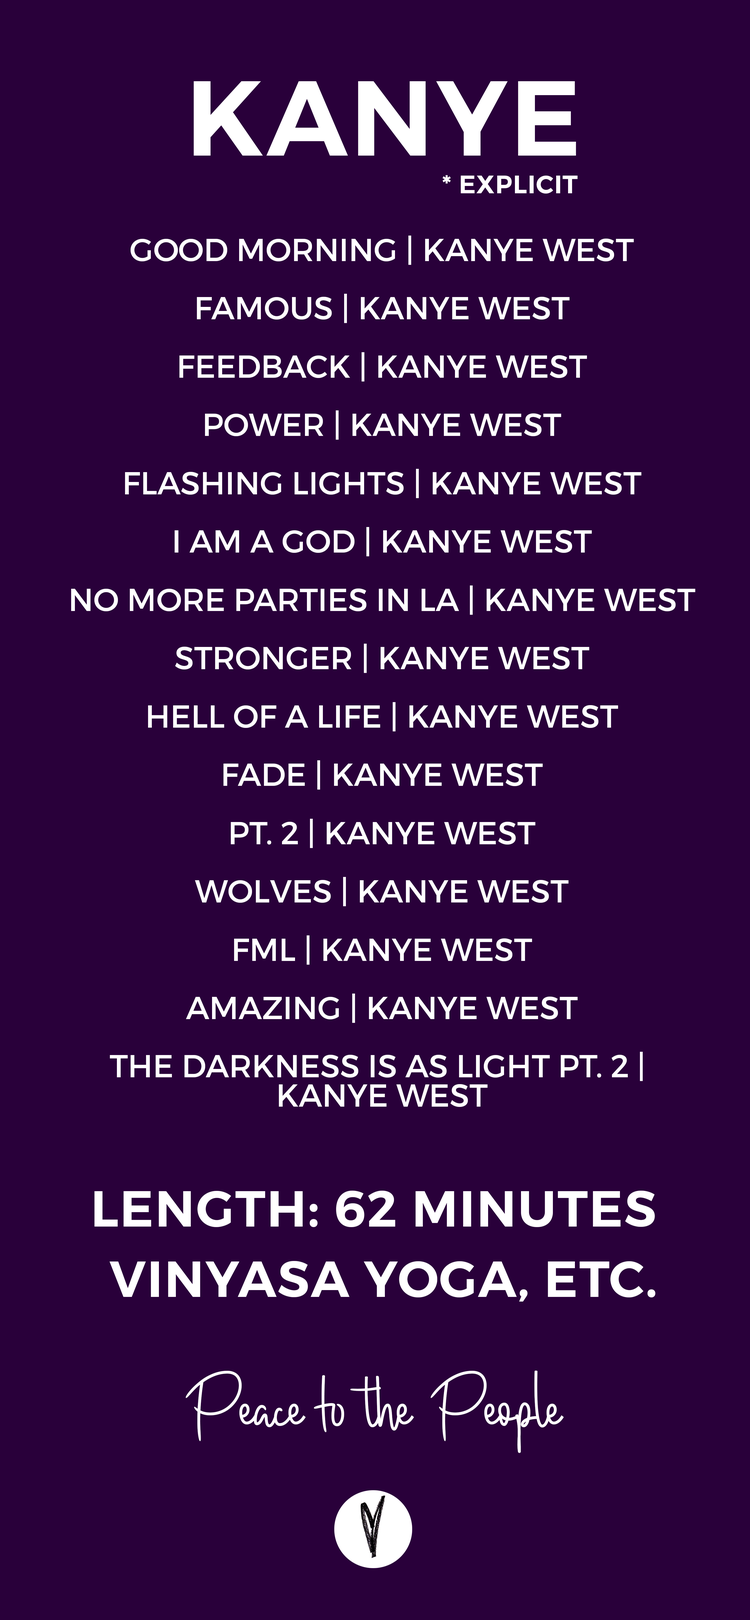 Kanye West Yoga Fitness Playlist Peace To The People Kanye West Lyrics Yoga Playlist Kayne West Quotes